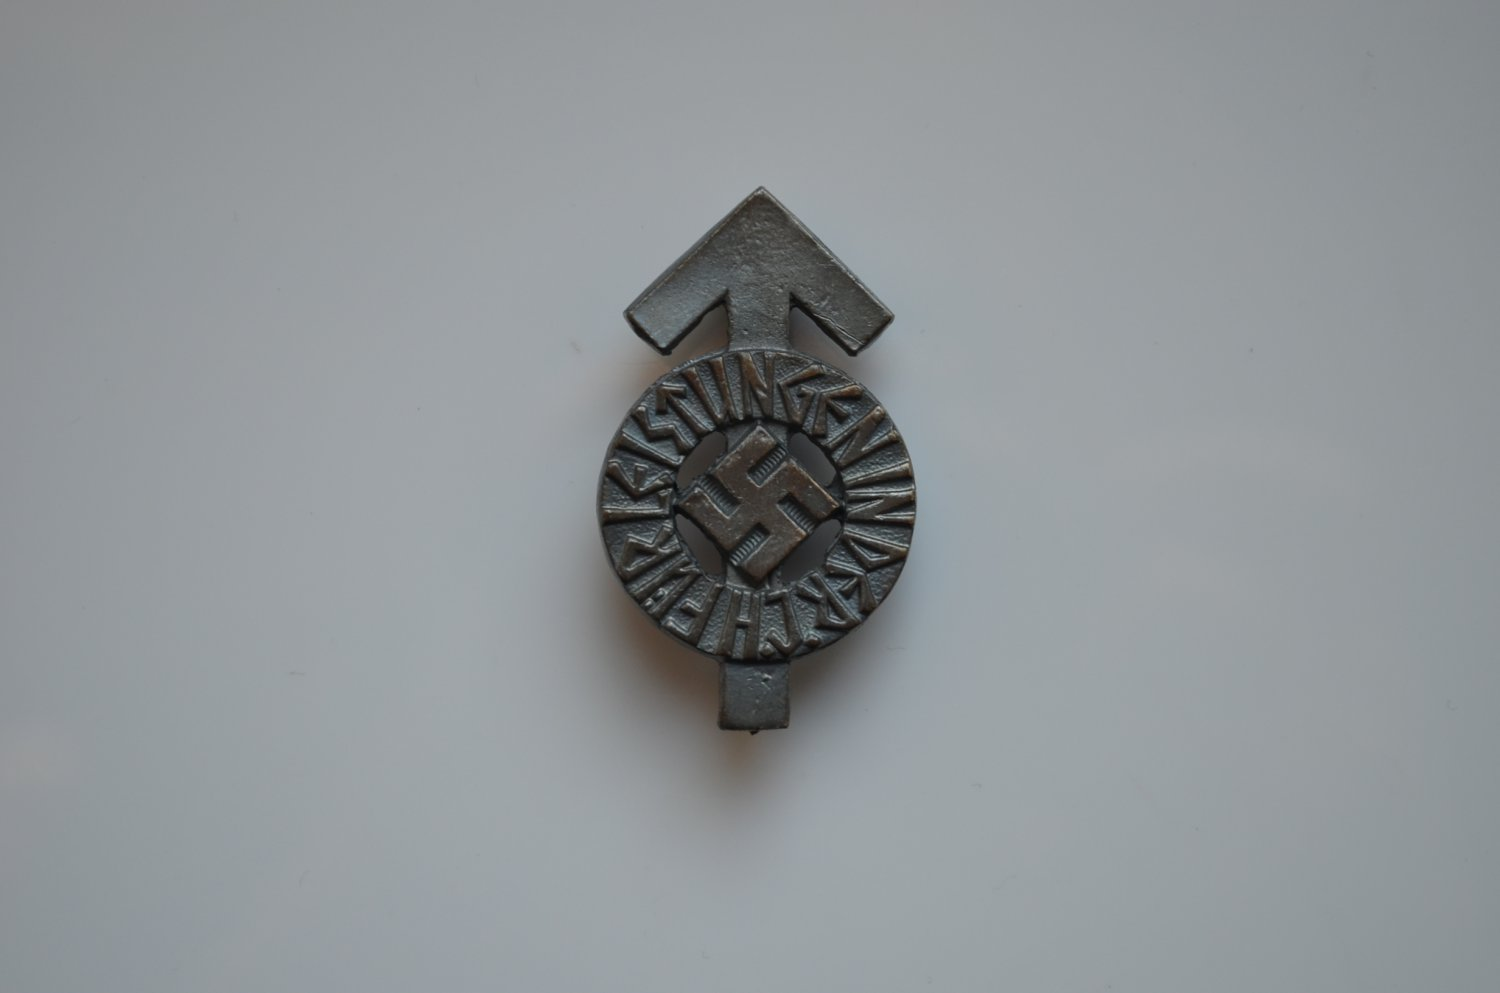 WWII THE GERMAN HITLER YOUTH PROFICIENCY BADGE